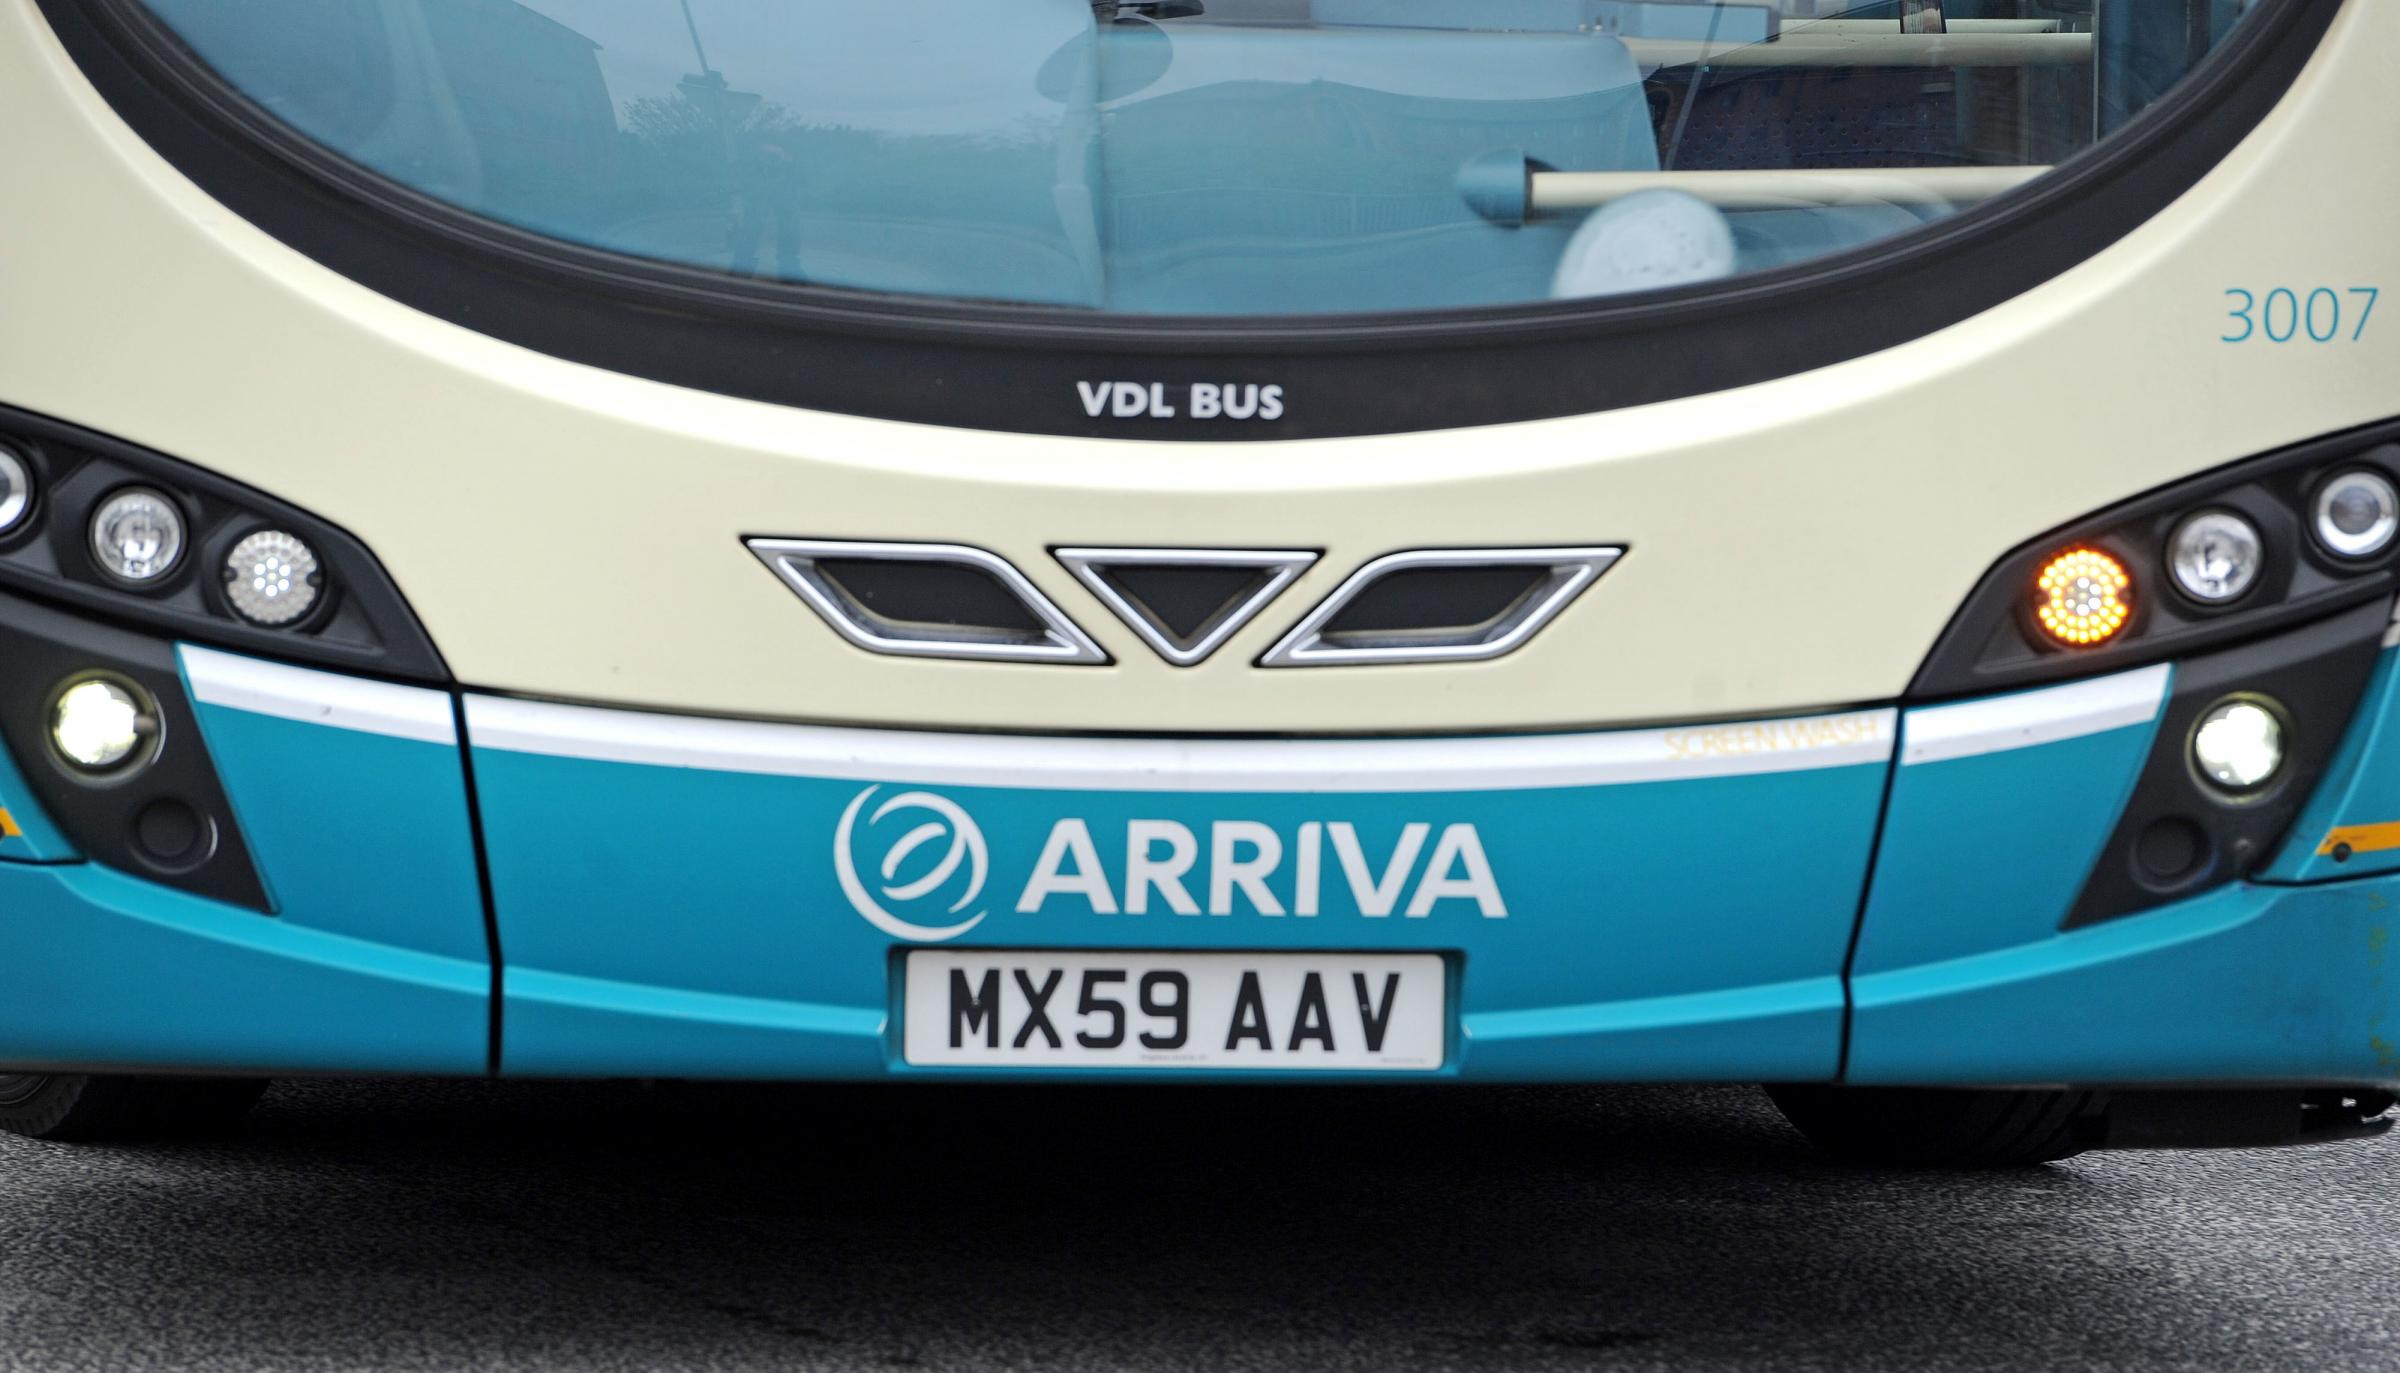 Eleventh hour talks to head off Arriva strike action are taking place